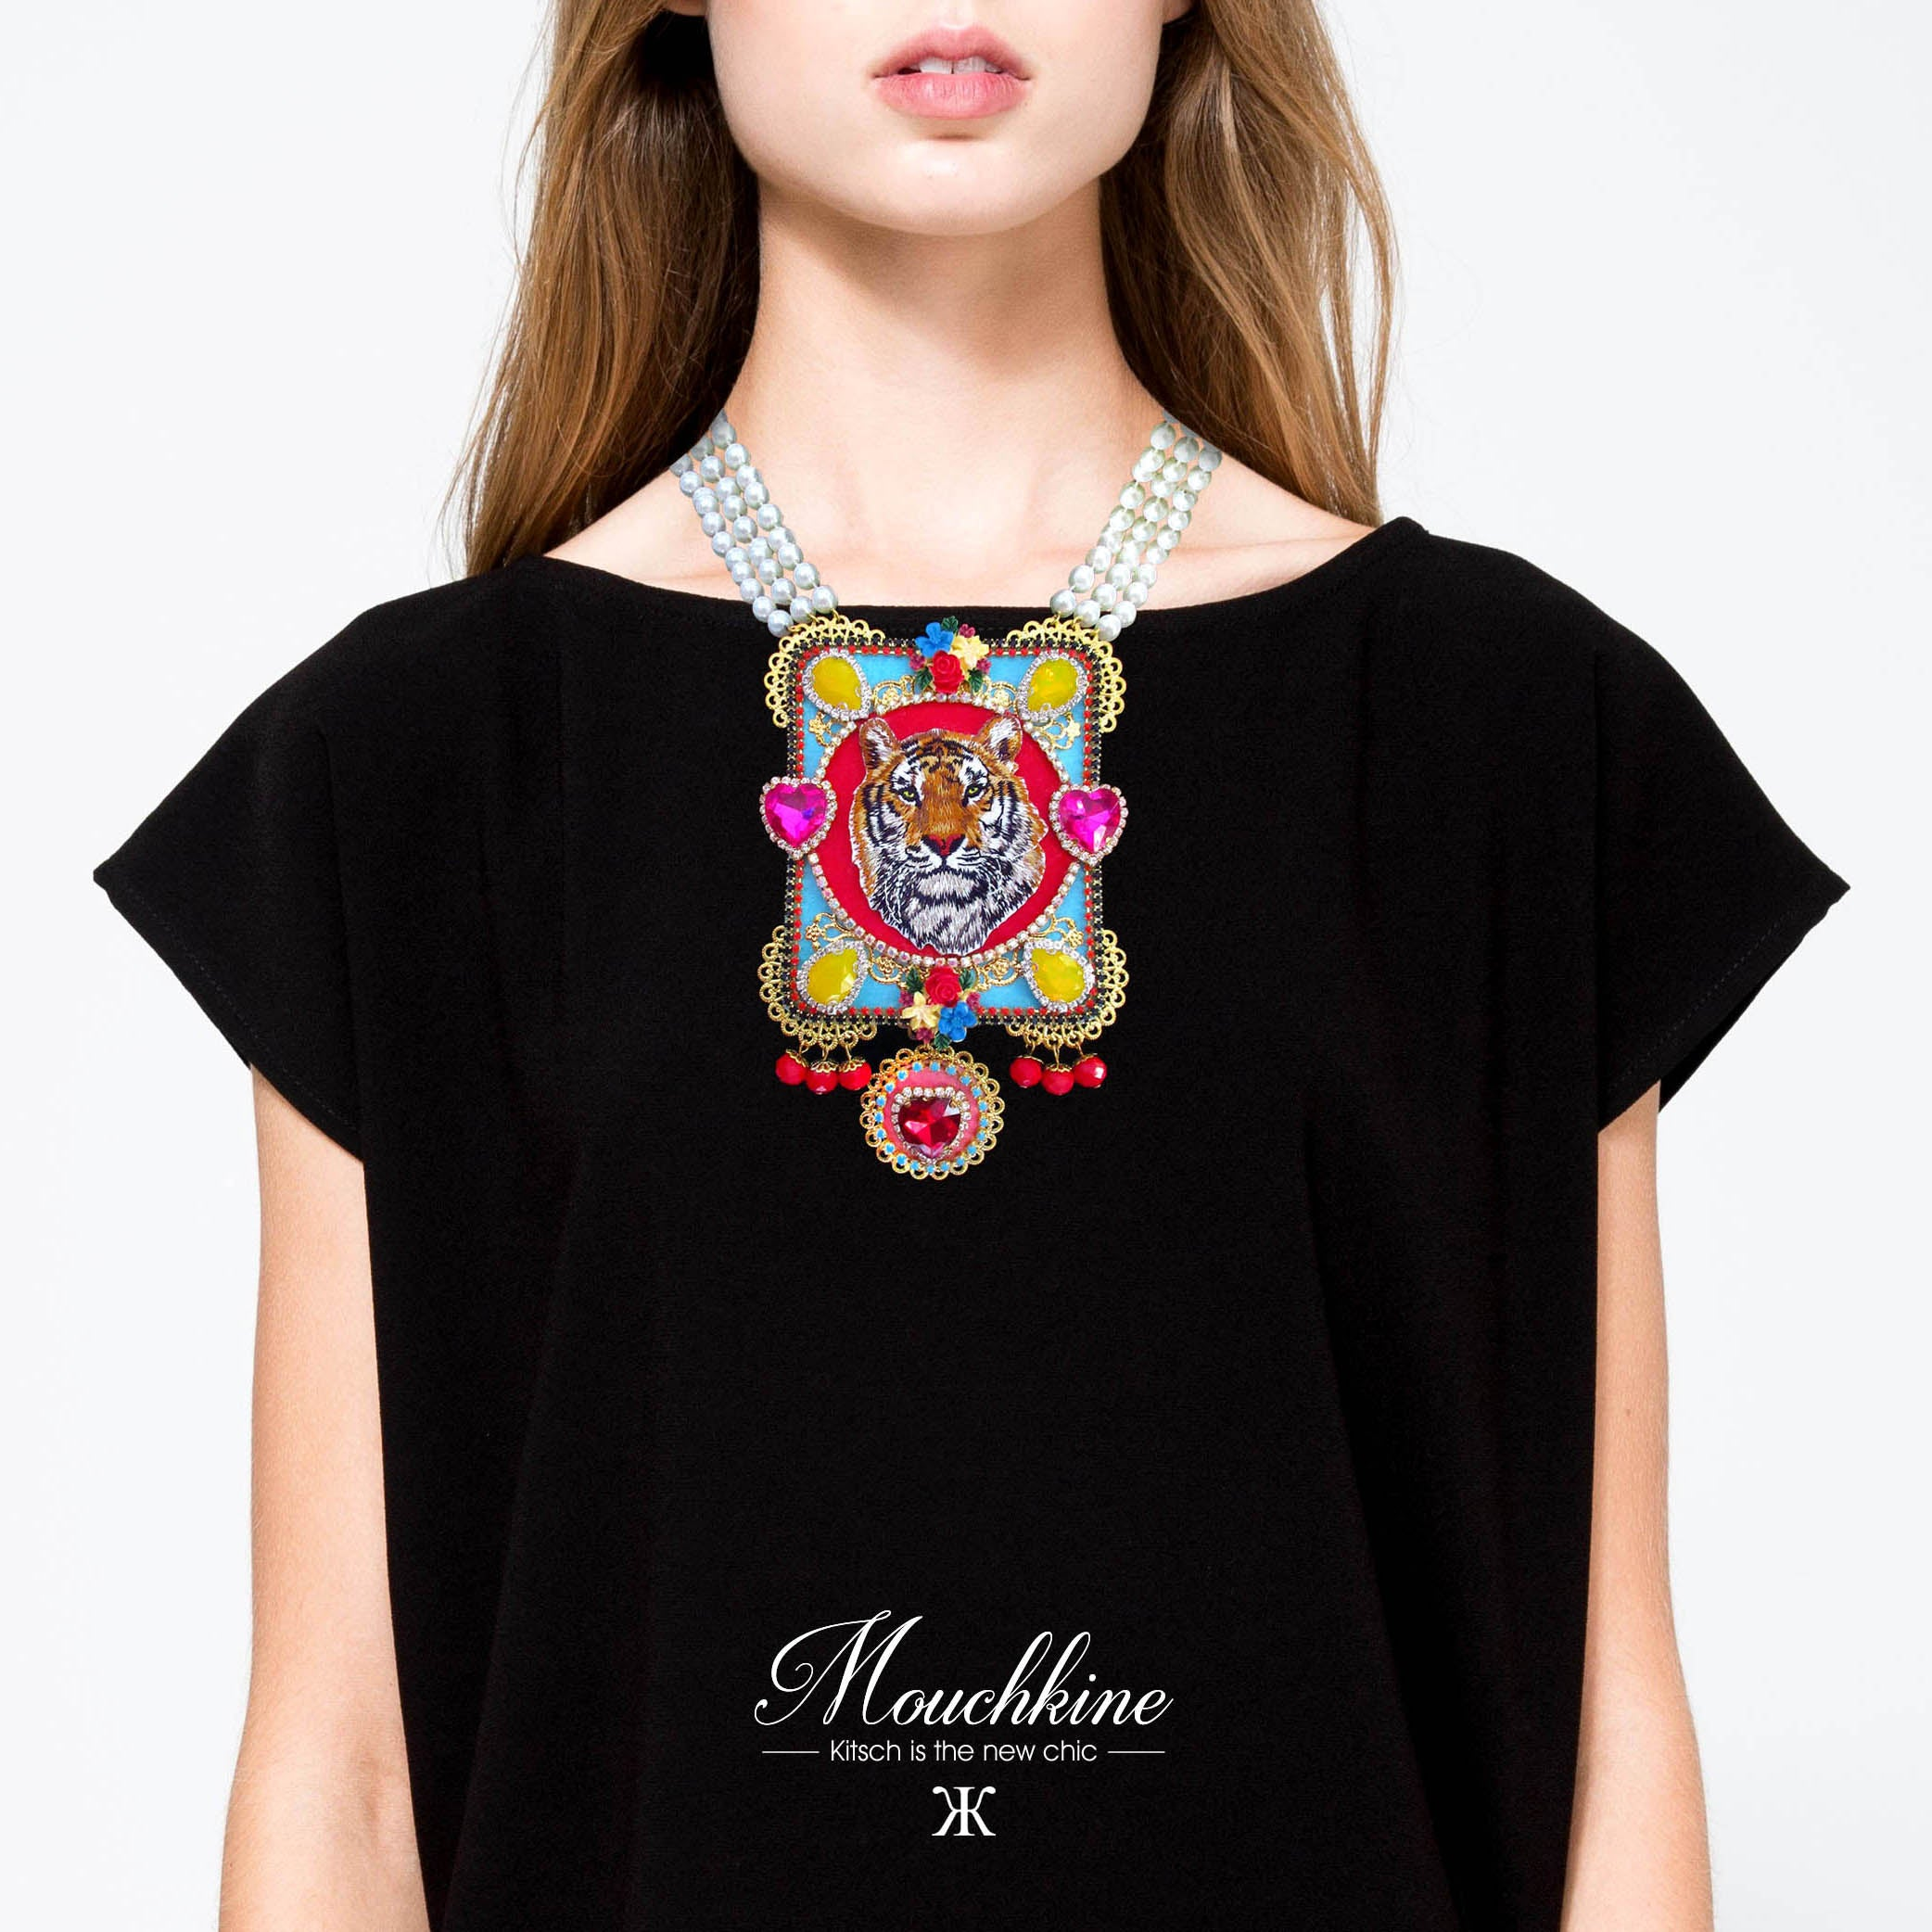 Mouchkine Jewelry made in france chic and trendy tiger statement necklace